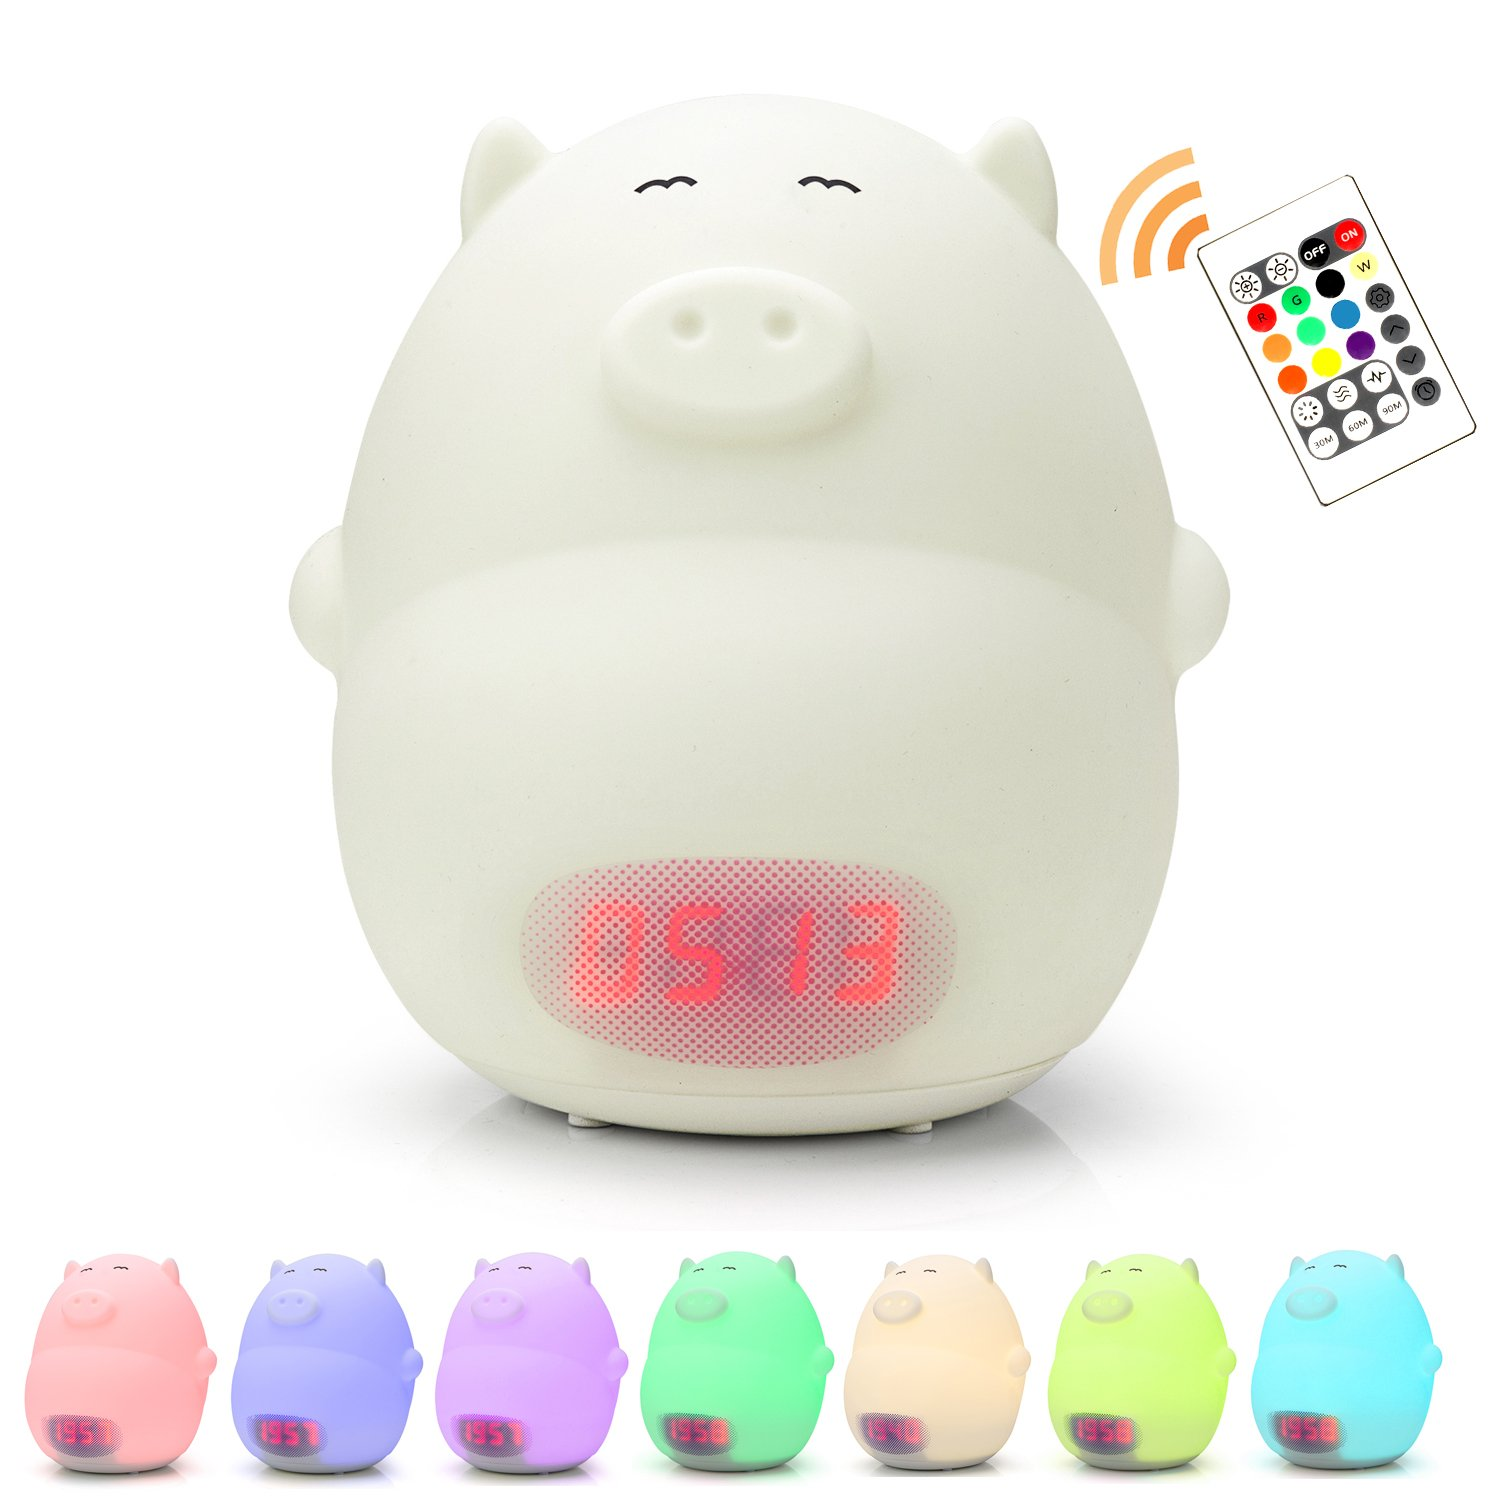 Alarm Clock for Kids with Remote Control, GoLine Alarm Clocks for Bedrooms, Colorful Cute Pig Night Light, Digital Clock Battery Powered, Nursery Clock, Toys for 1 Year Old, Birthday Gifts for Girls.